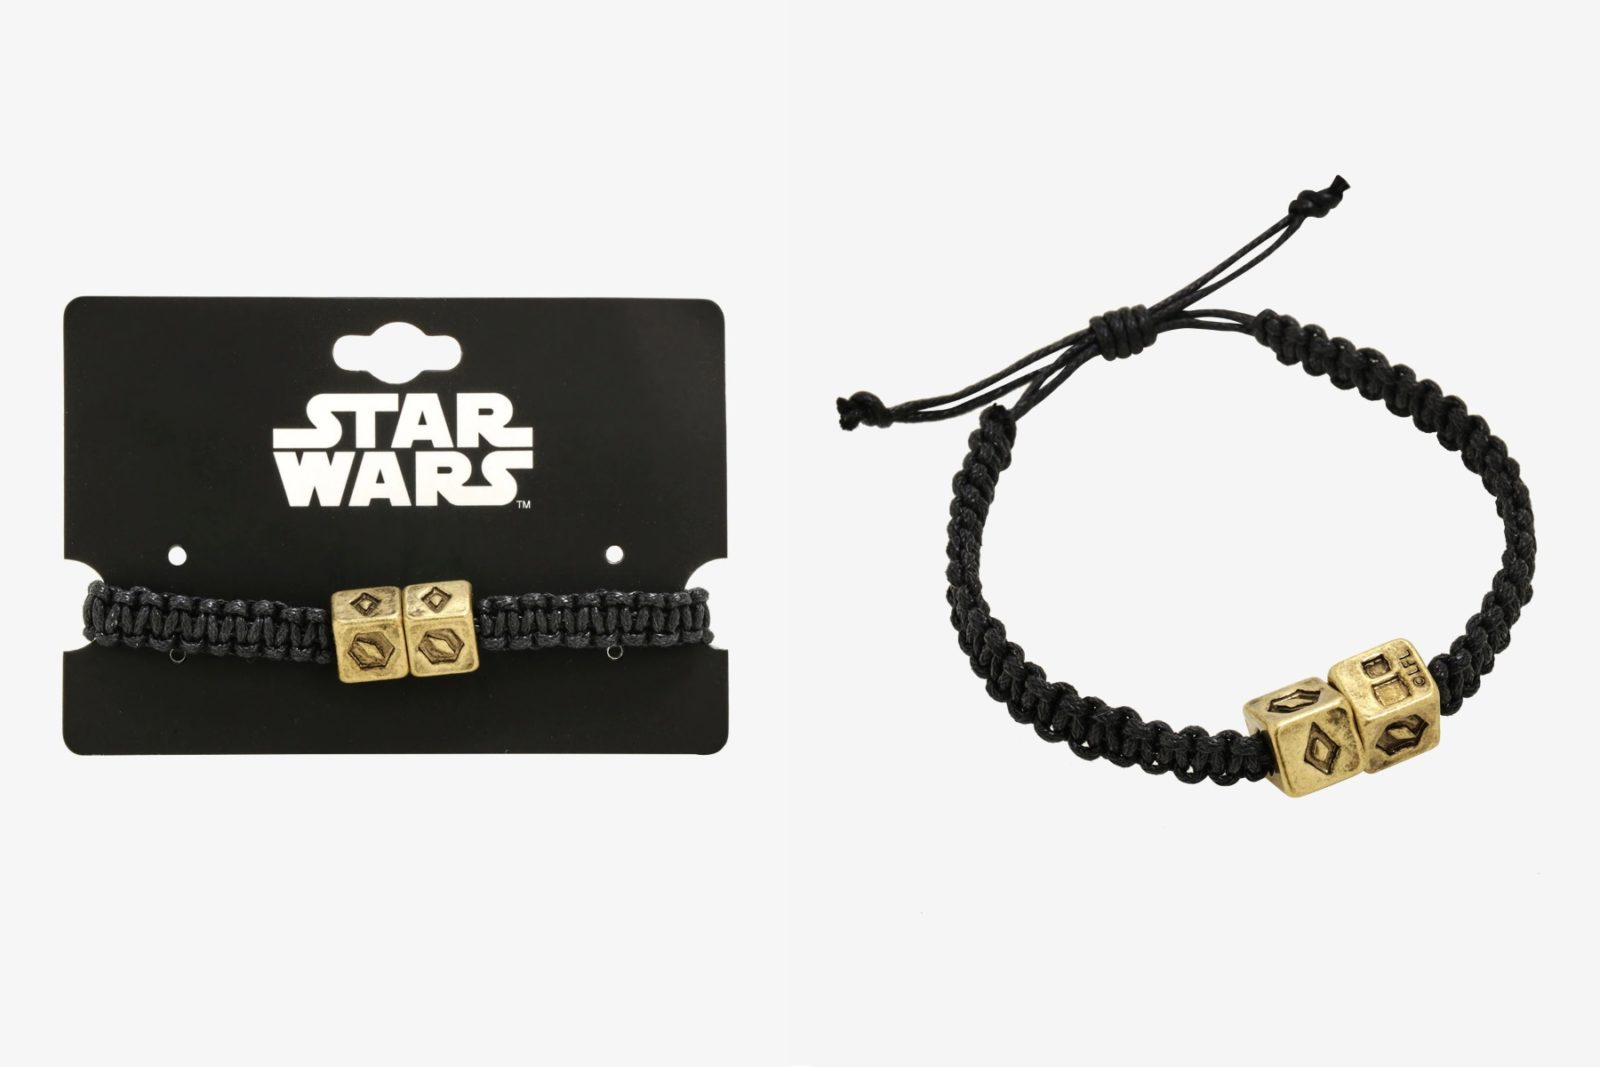 Solo Dice Cord Bracelet at Box Lunch